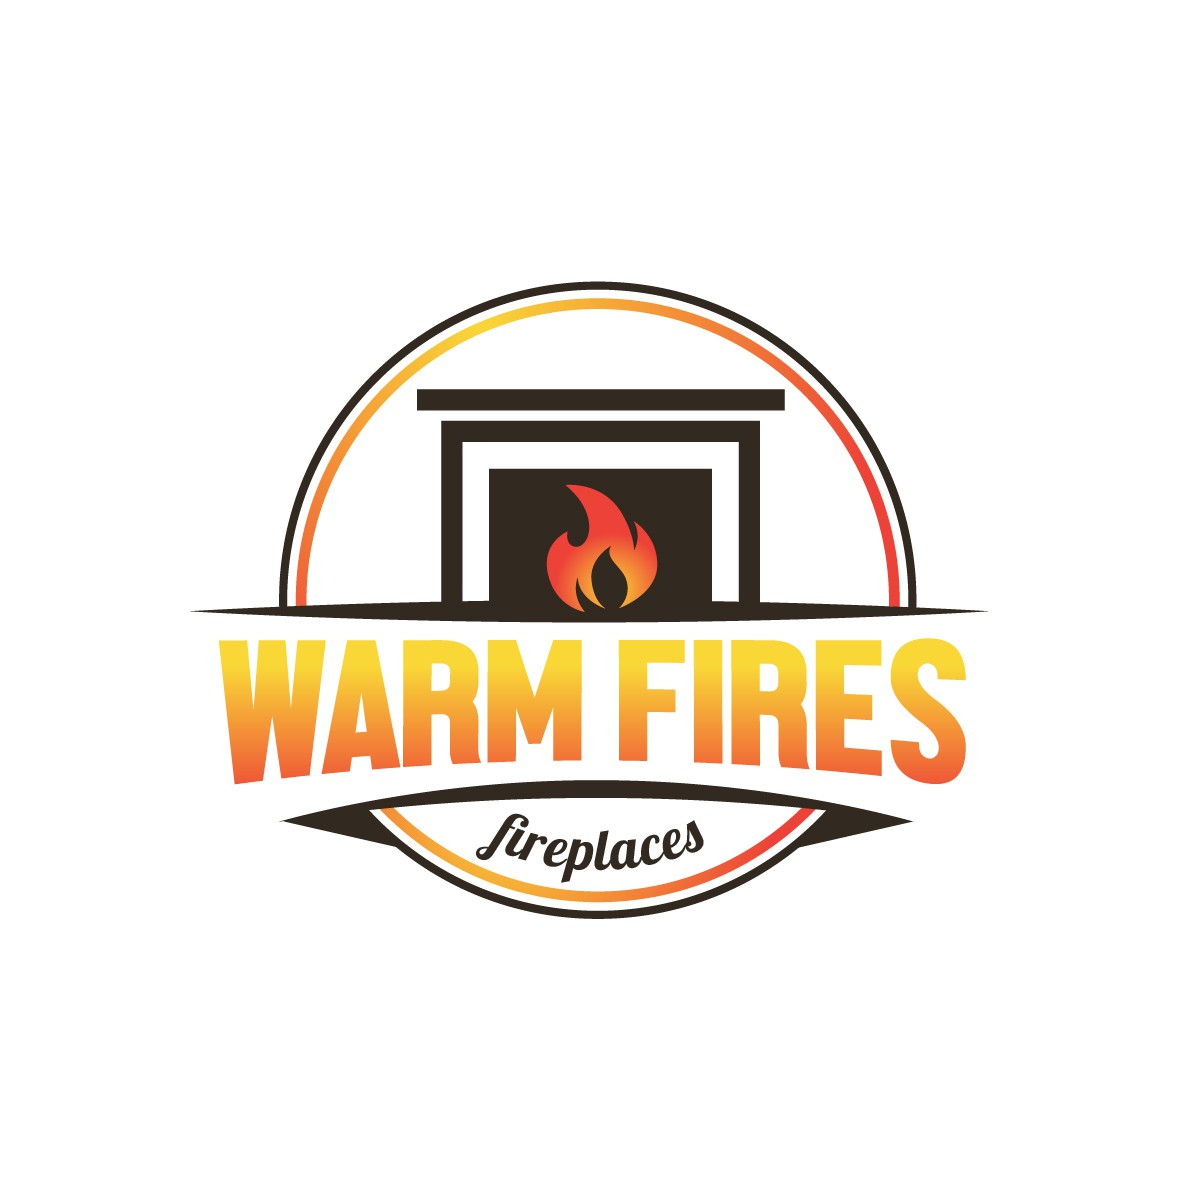 Design a logo for our store selling gas and electric fireplaces targeted towards established homeowners